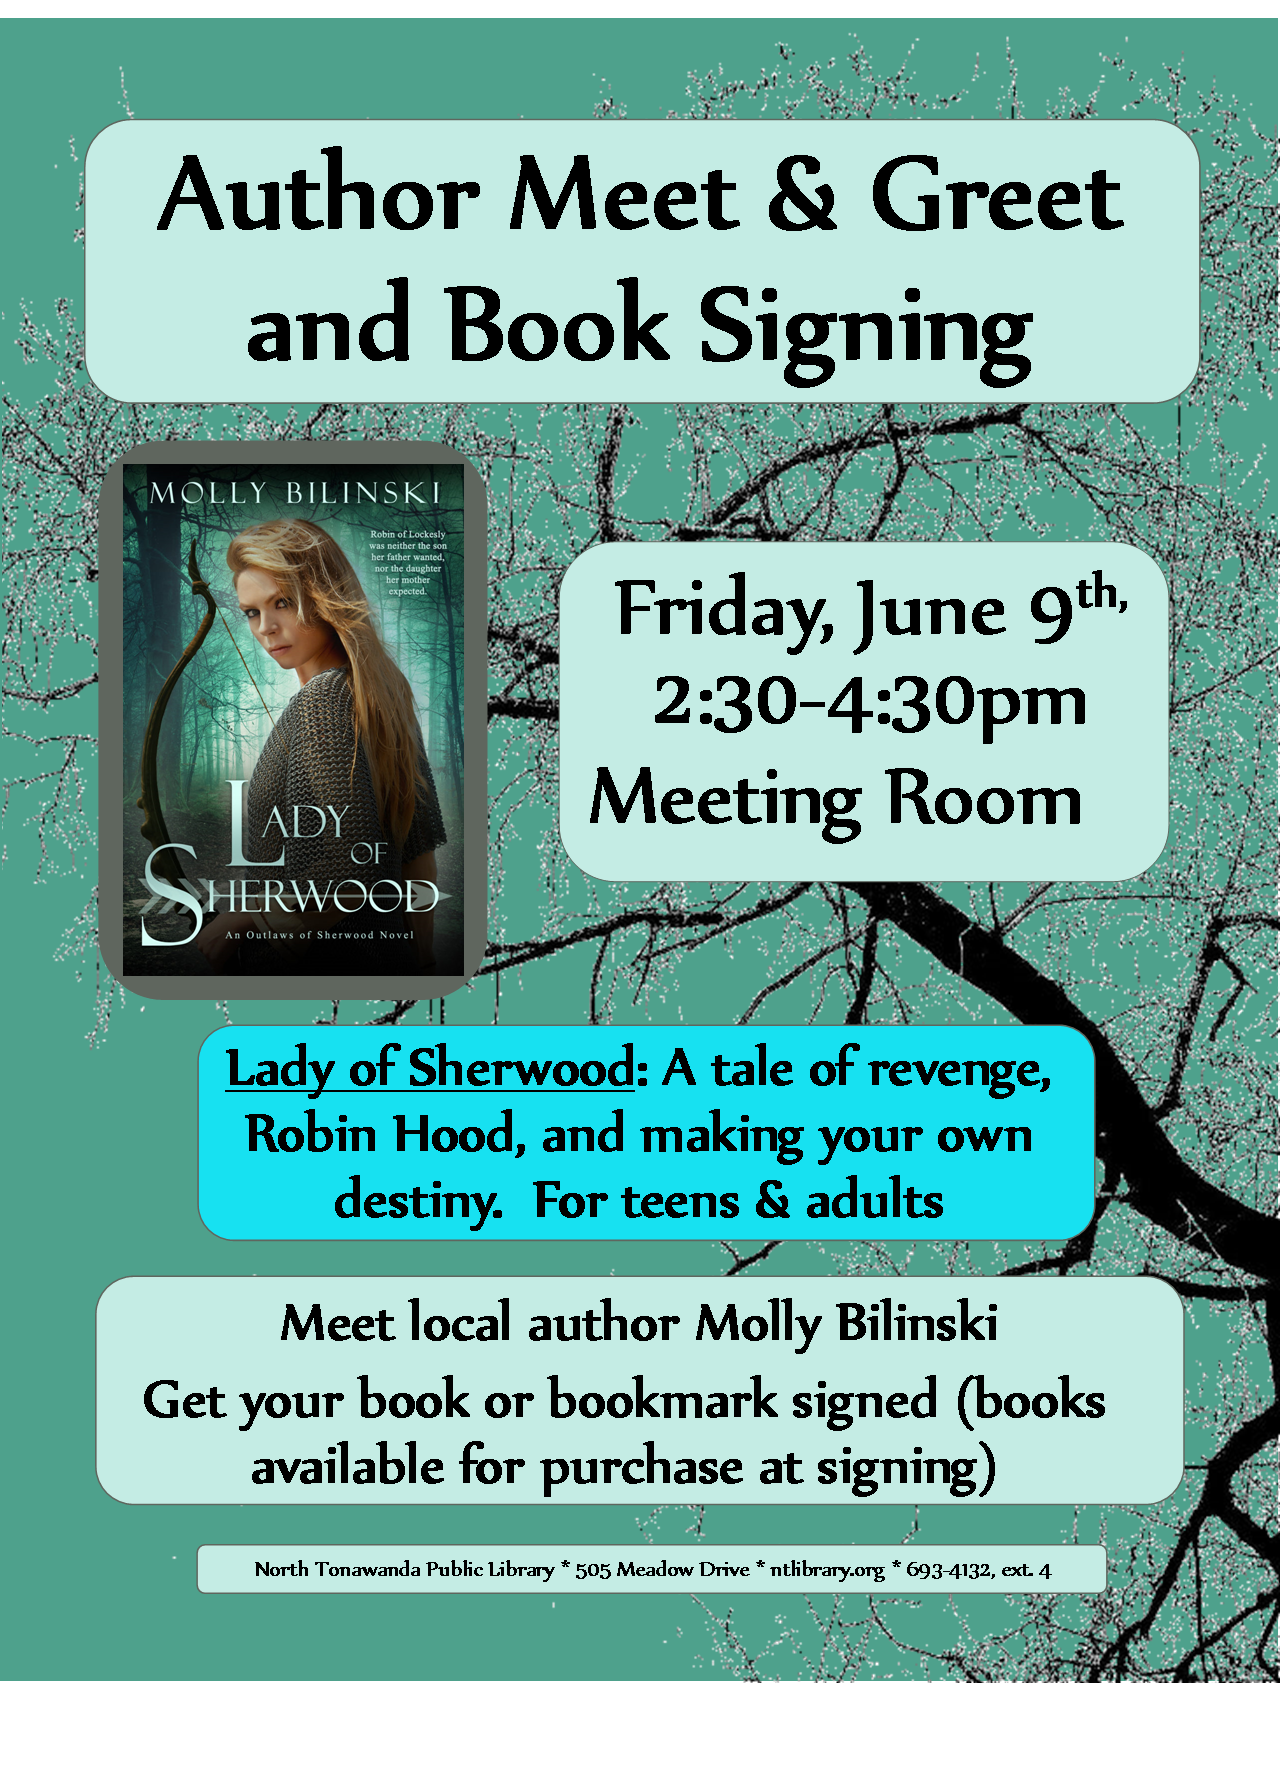 lady of sherwood author visit 2017 flyer online